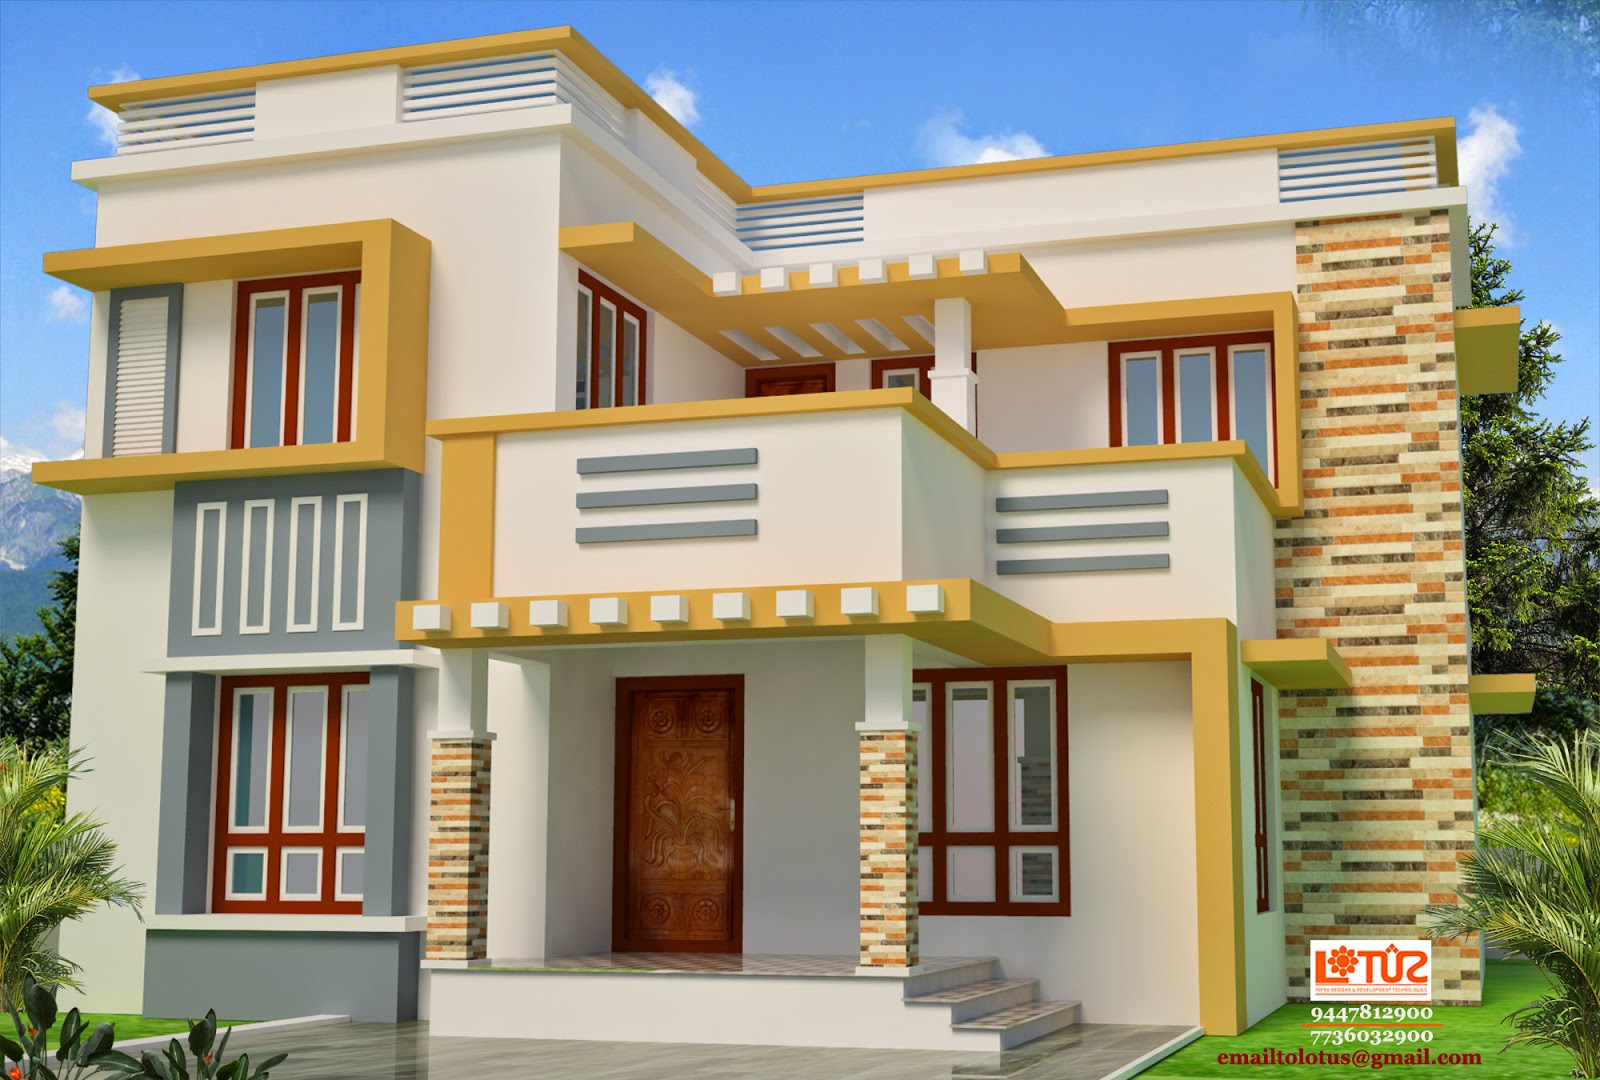 Veedu designs joy studio design gallery best design for Veedu elevation